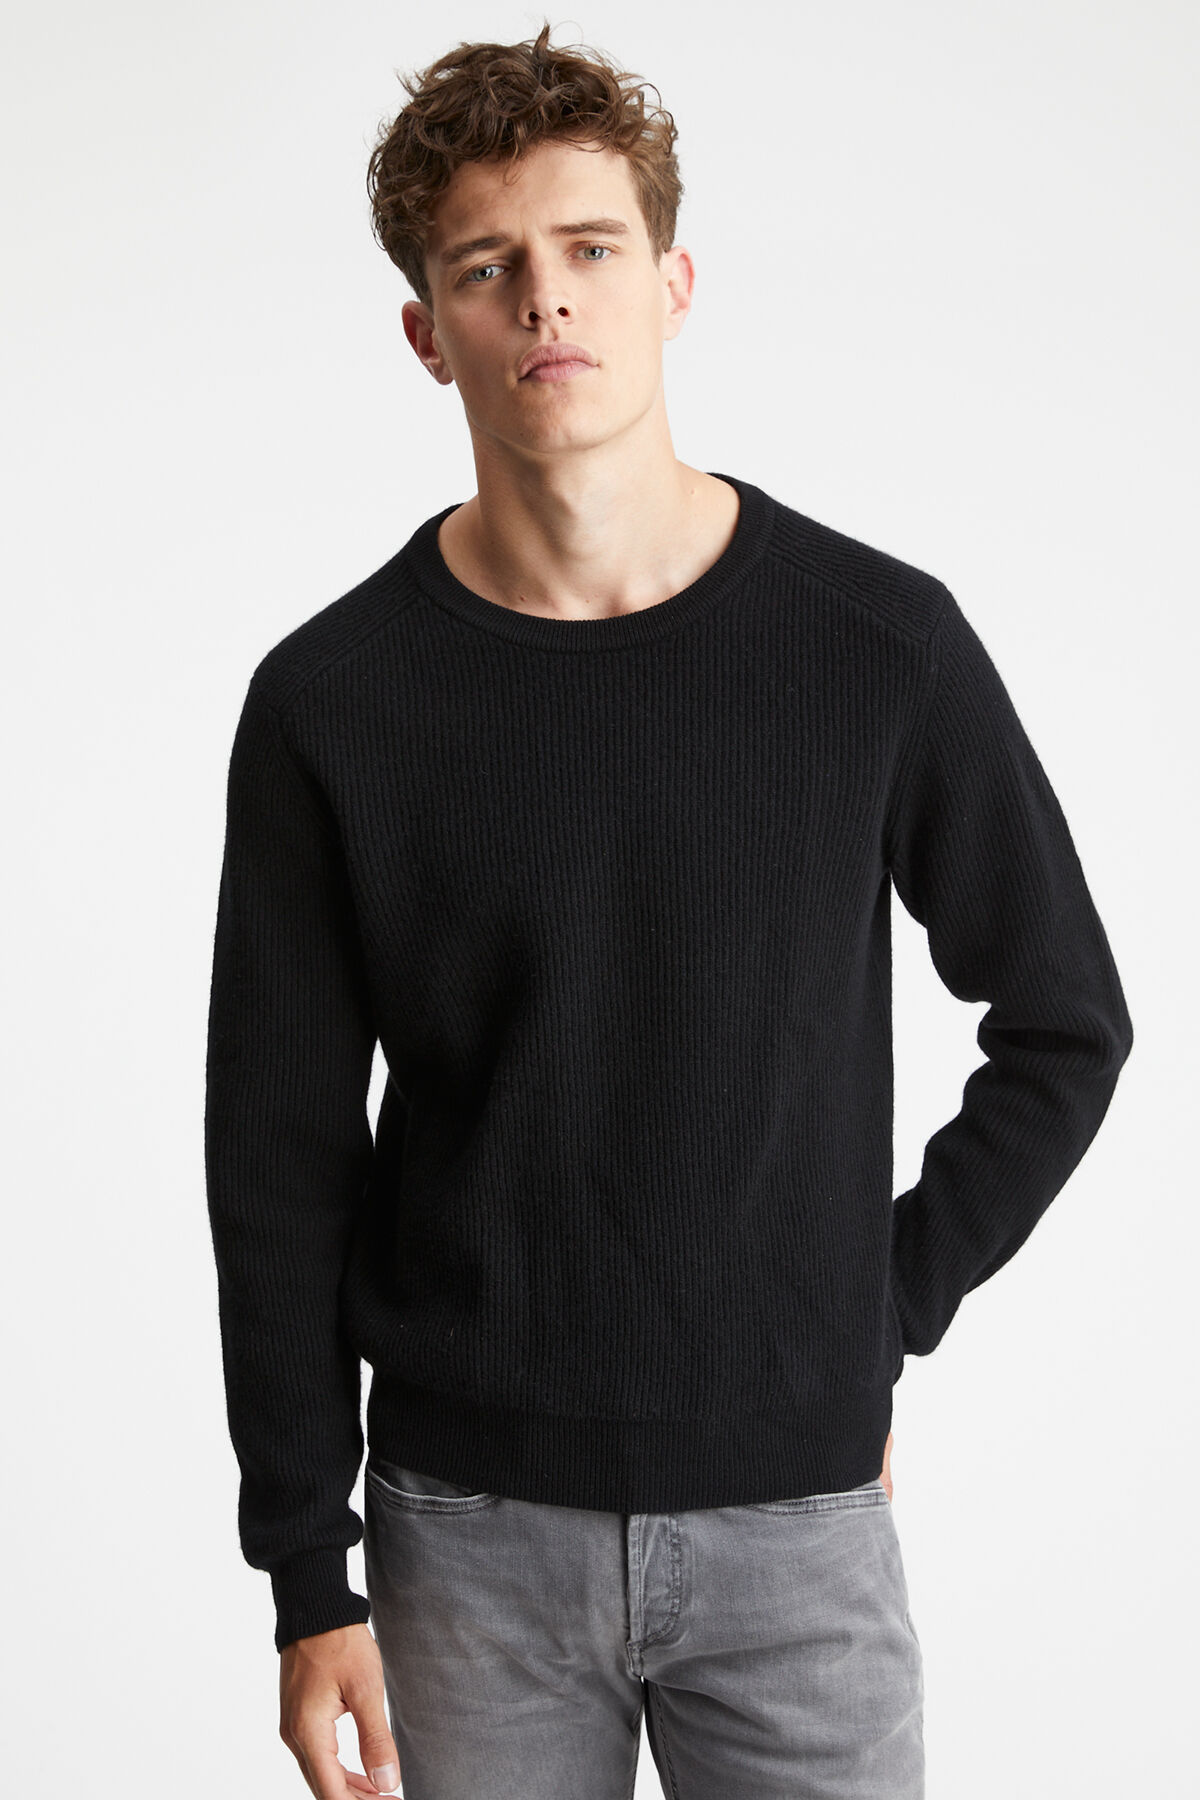 CHELSEA CREW Wool & Cashmere Blend - Regular Fit